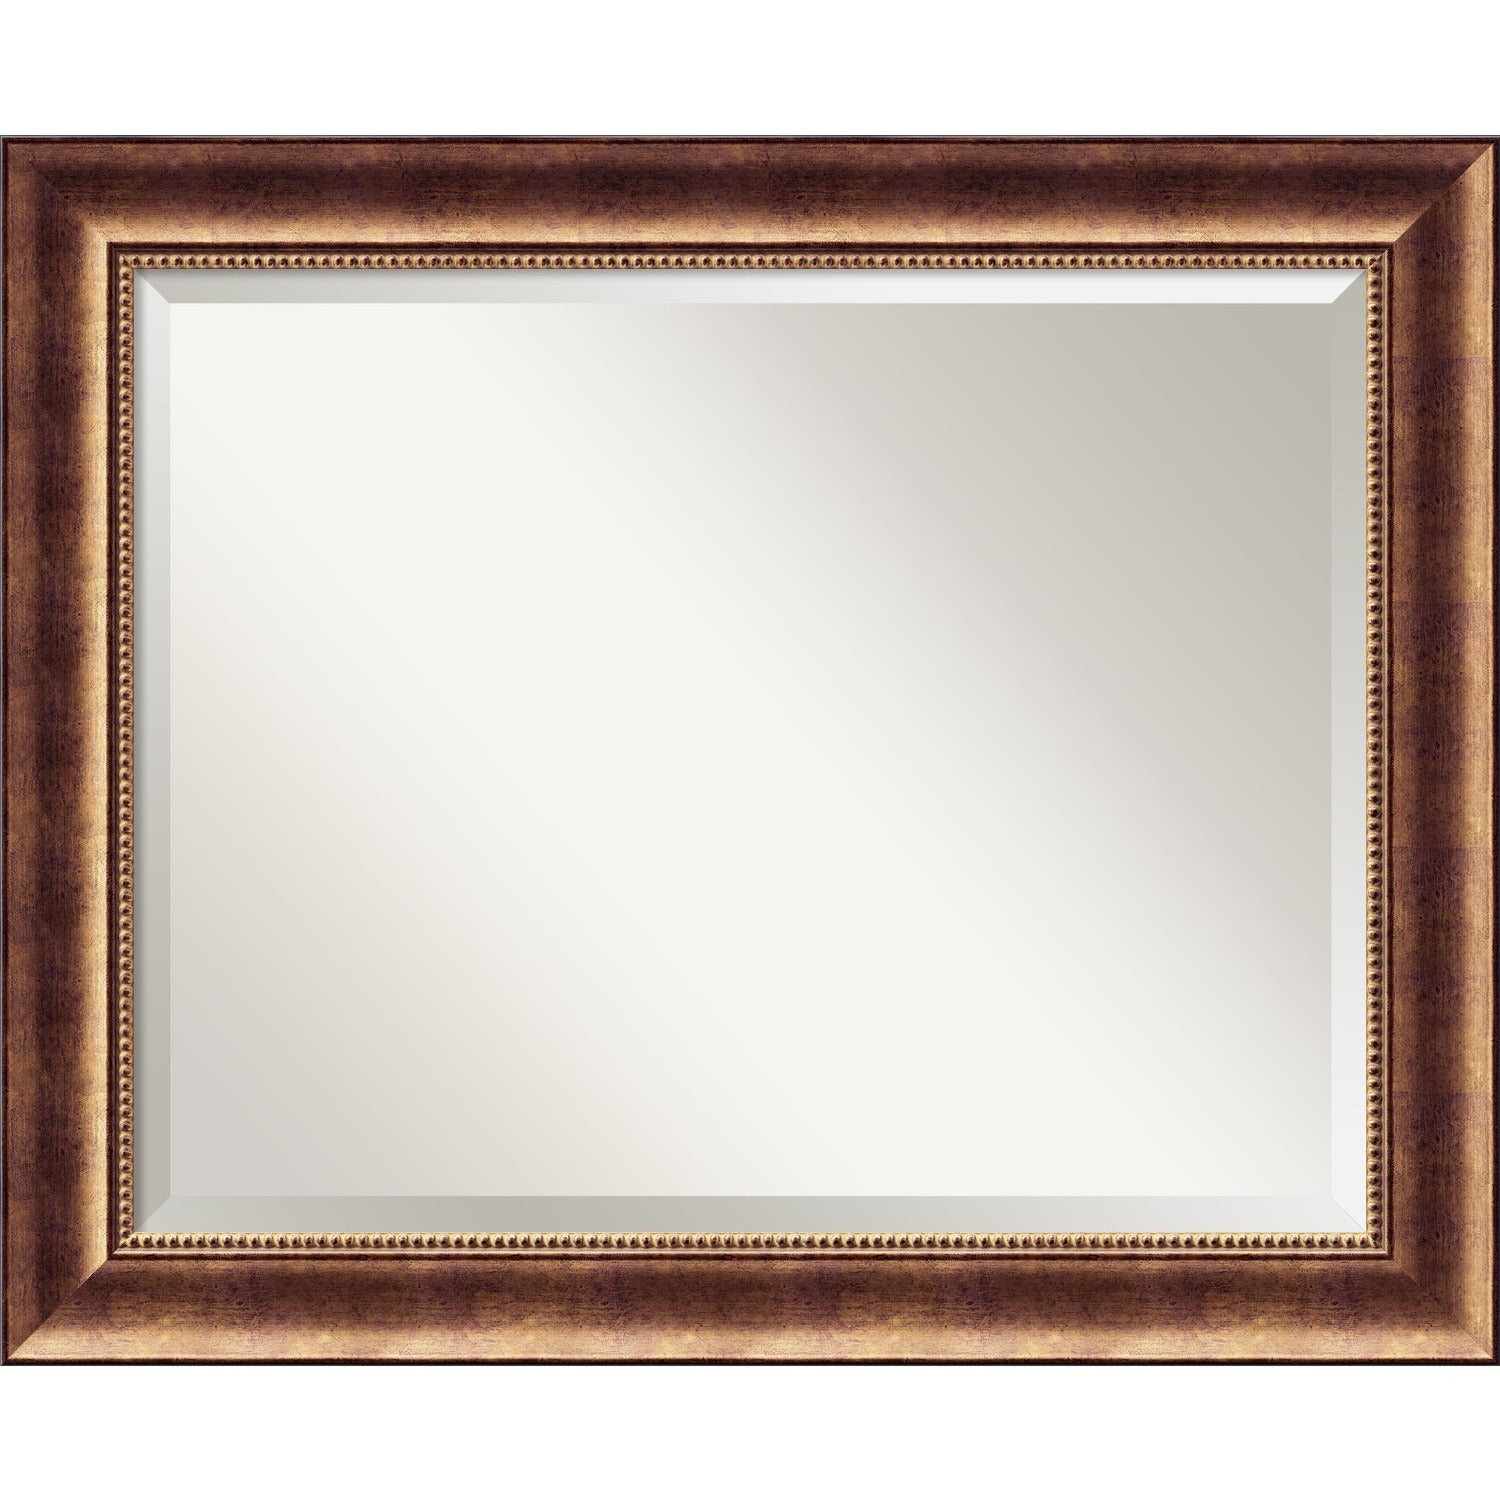 Wall Mirror Large Manhattan Bronze 34 X 28 Inch Red Large 34 X 28 Inch